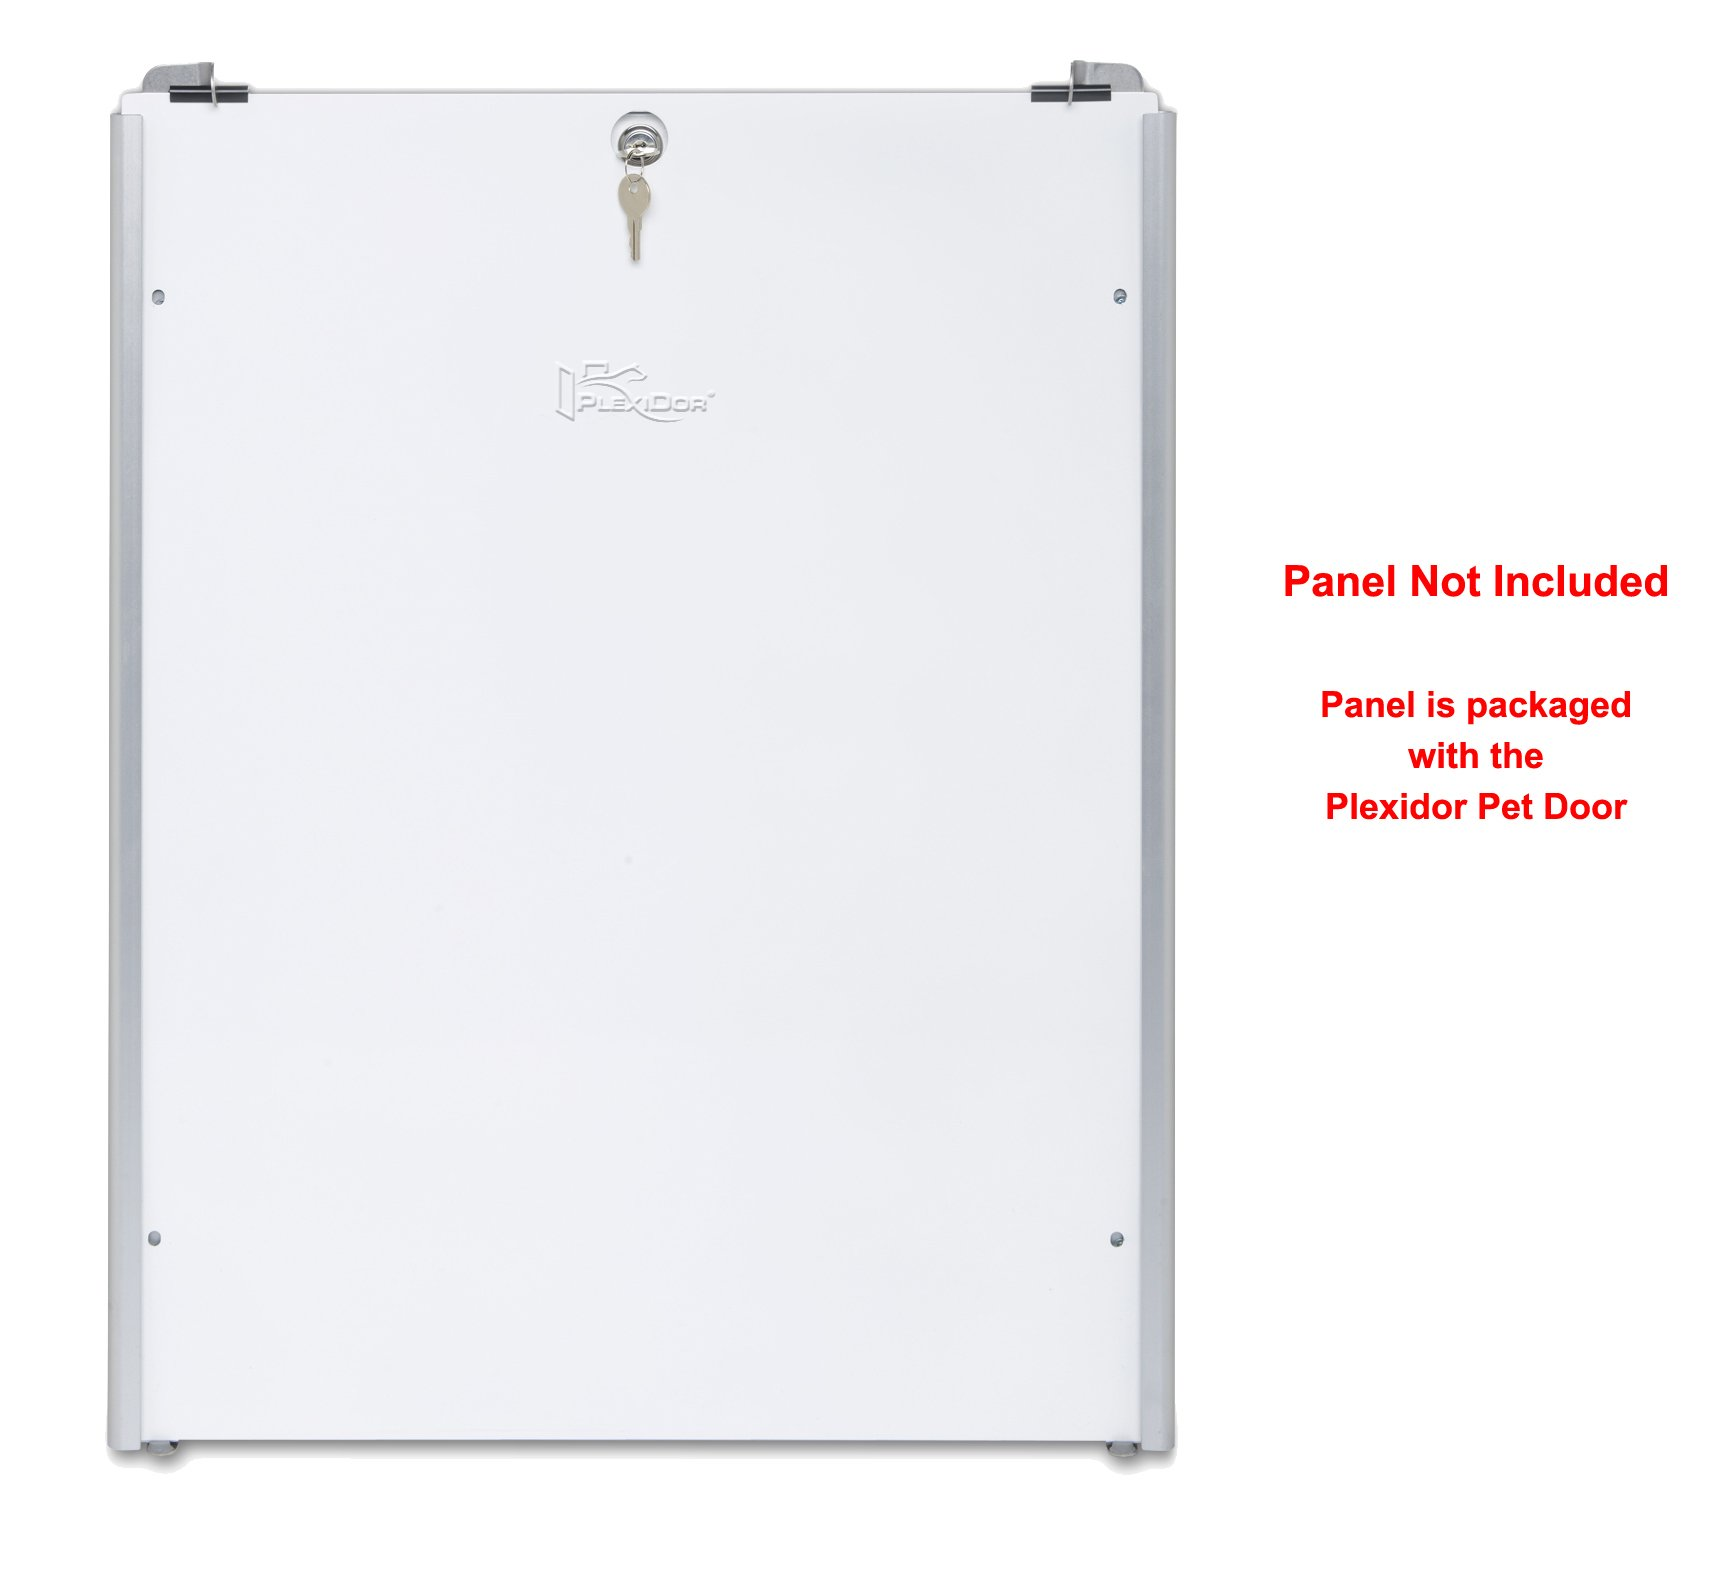 Plexidor Easy Slide Tracks for Security Panel that's Included with Extra Large Stainless Plexidor Pet Doors - Easy Mount, Easy Locking Security Panel Tracks